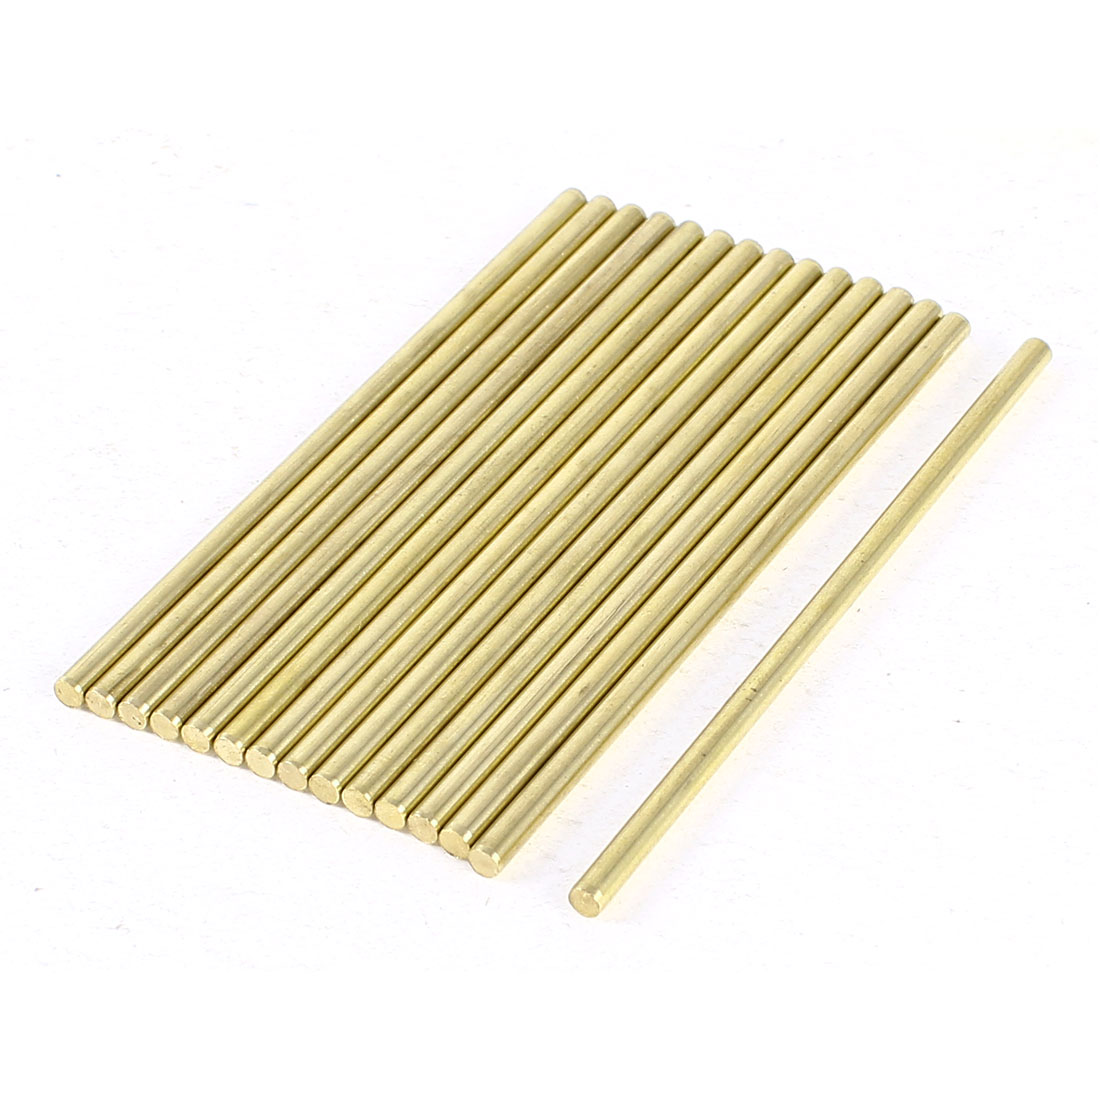 15 Pcs Car Helicopter Model Toy DIY Brass Axles Rod Bars 3mm x 80mm